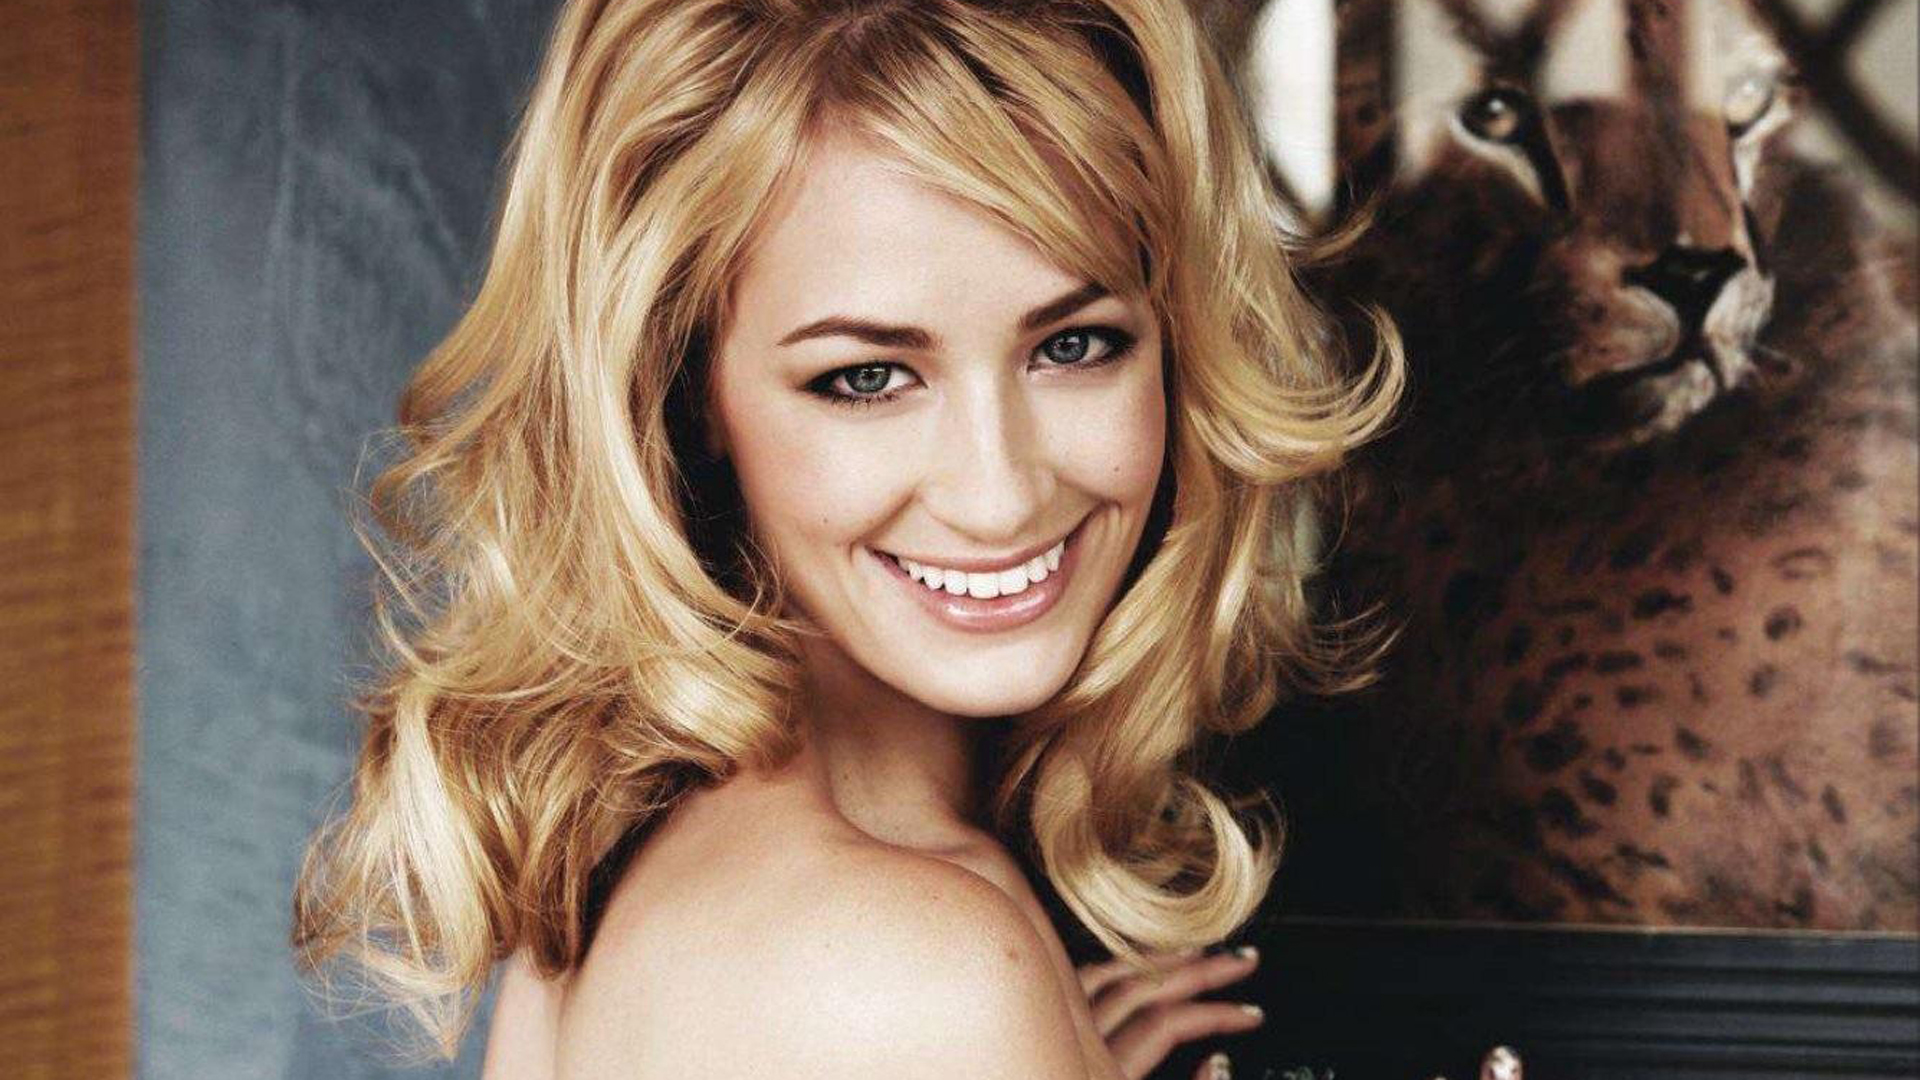 1920x1080 - Beth Behrs Wallpapers 1